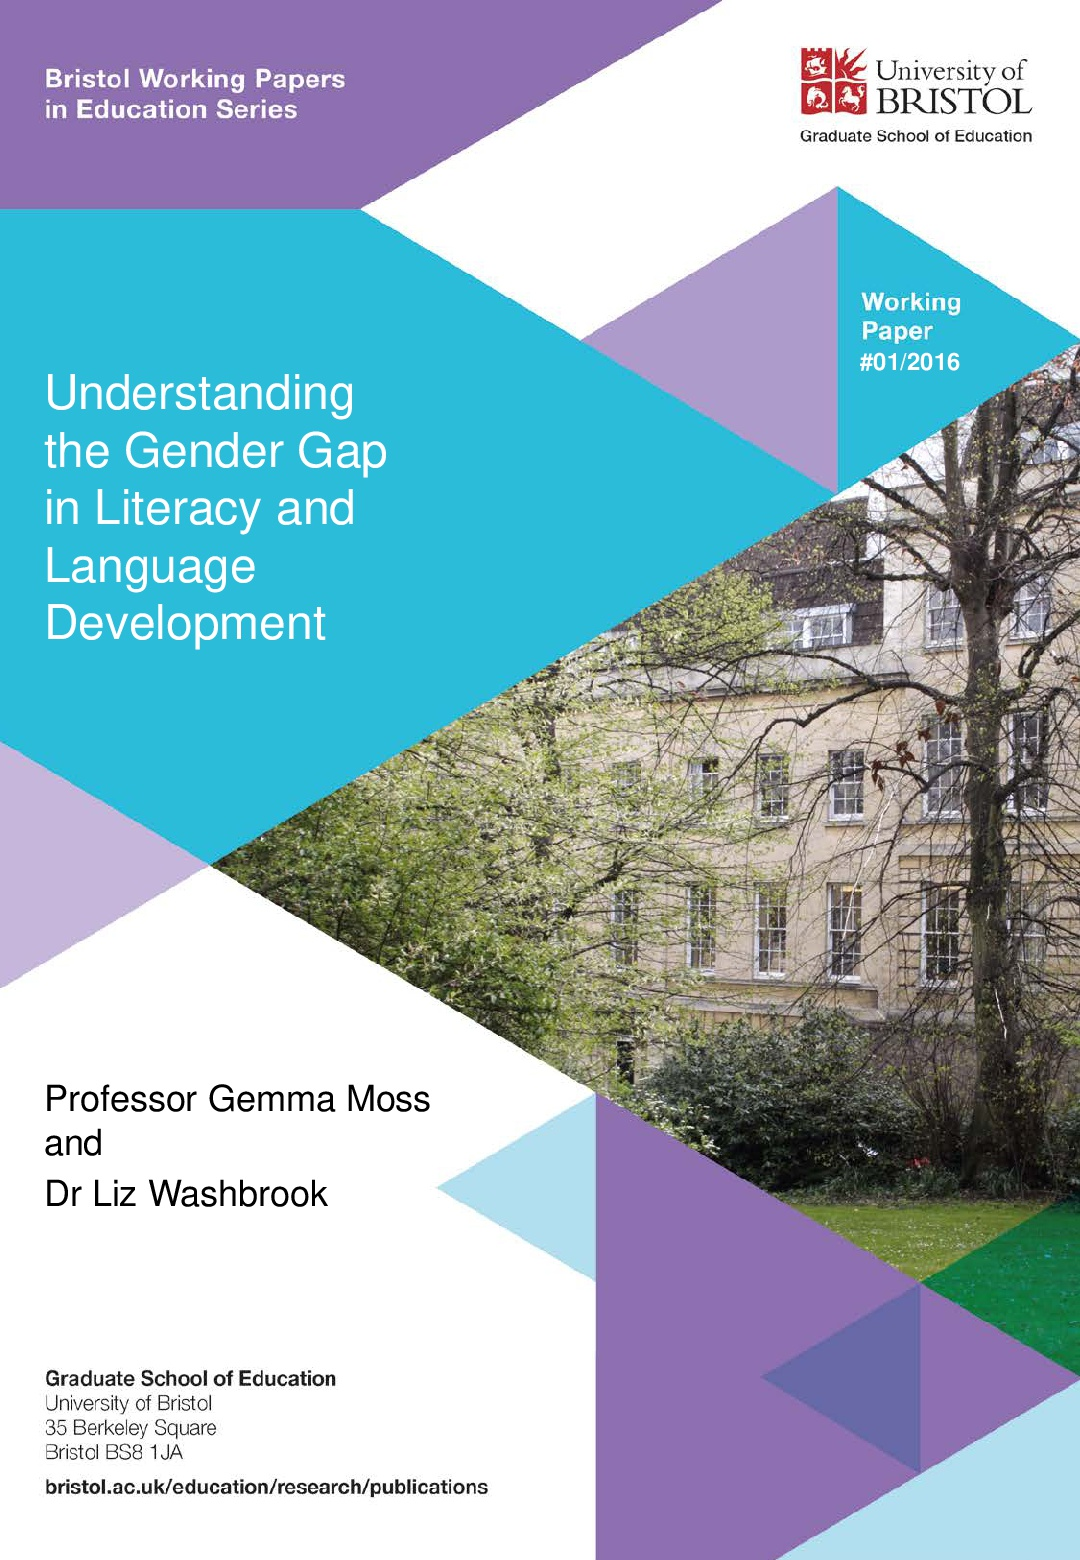 Understanding the Gender Gap in Literacy and Language Development